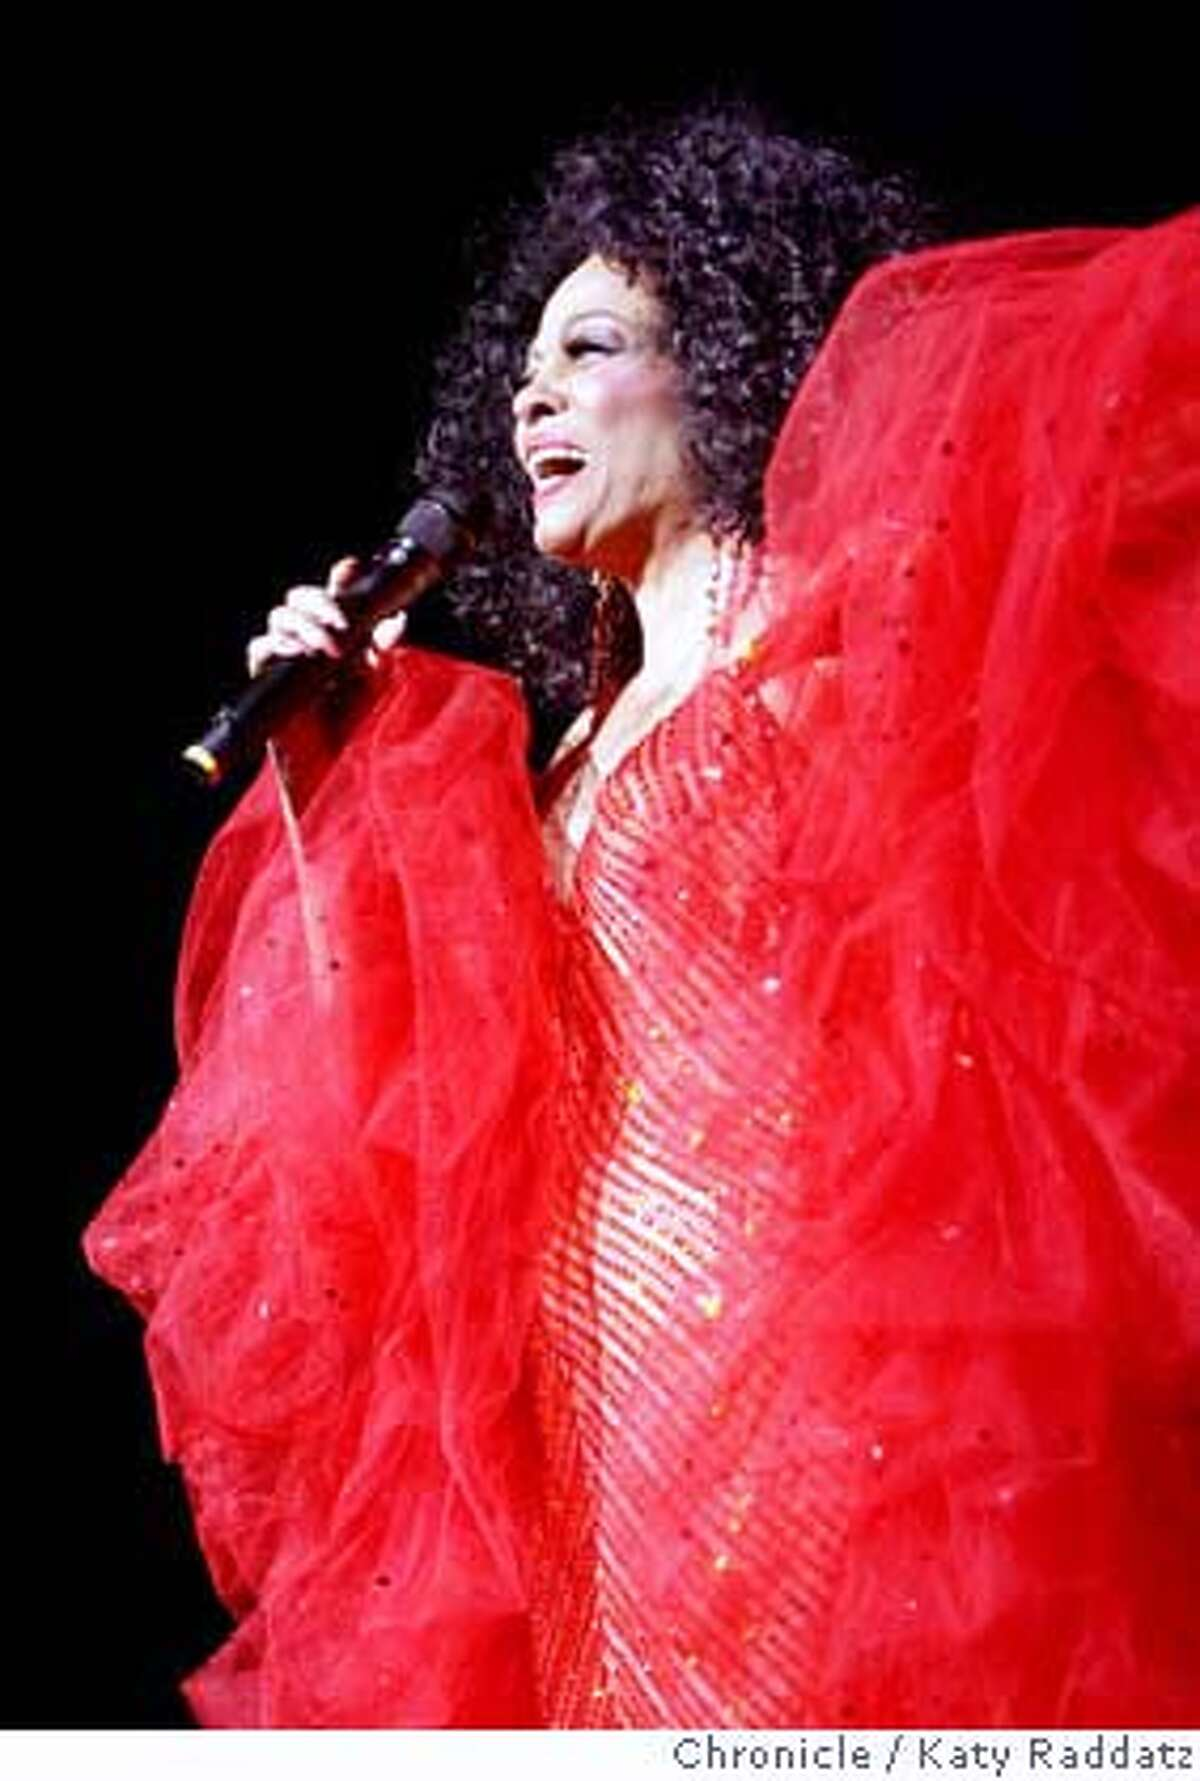 ROSS06 Diana Ross in concert at the Paramount Theater in Oakland, CA. These pictures were made on Sunday Nov. 4, 2007, in Oakland, CA. KATY RADDATZ/The Chronicle Photo taken on 11/4/07, in Oakland, CA, USA